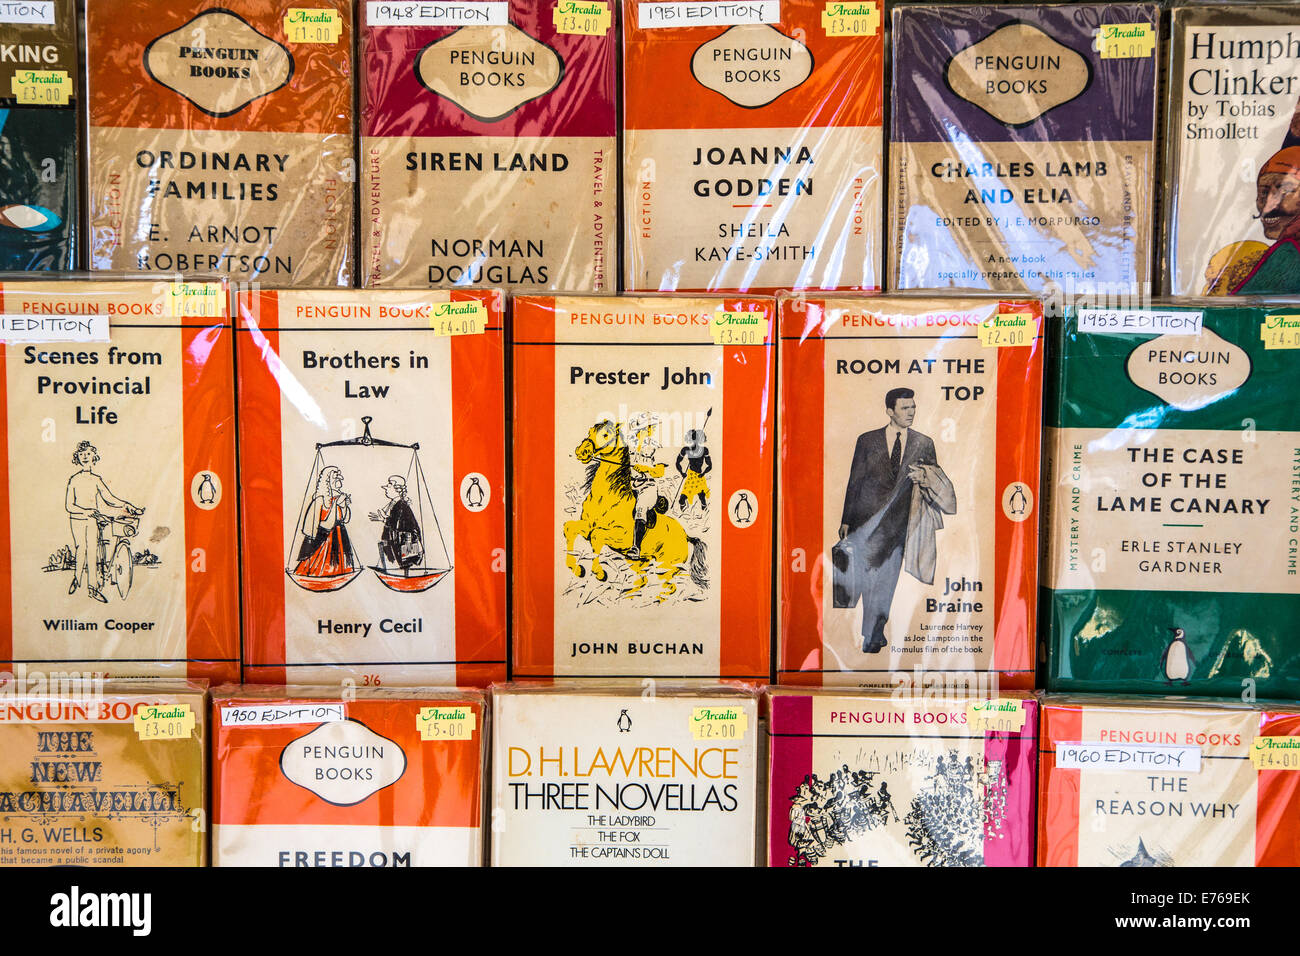 Secondhand Penguin Paperbacks - Stock Image